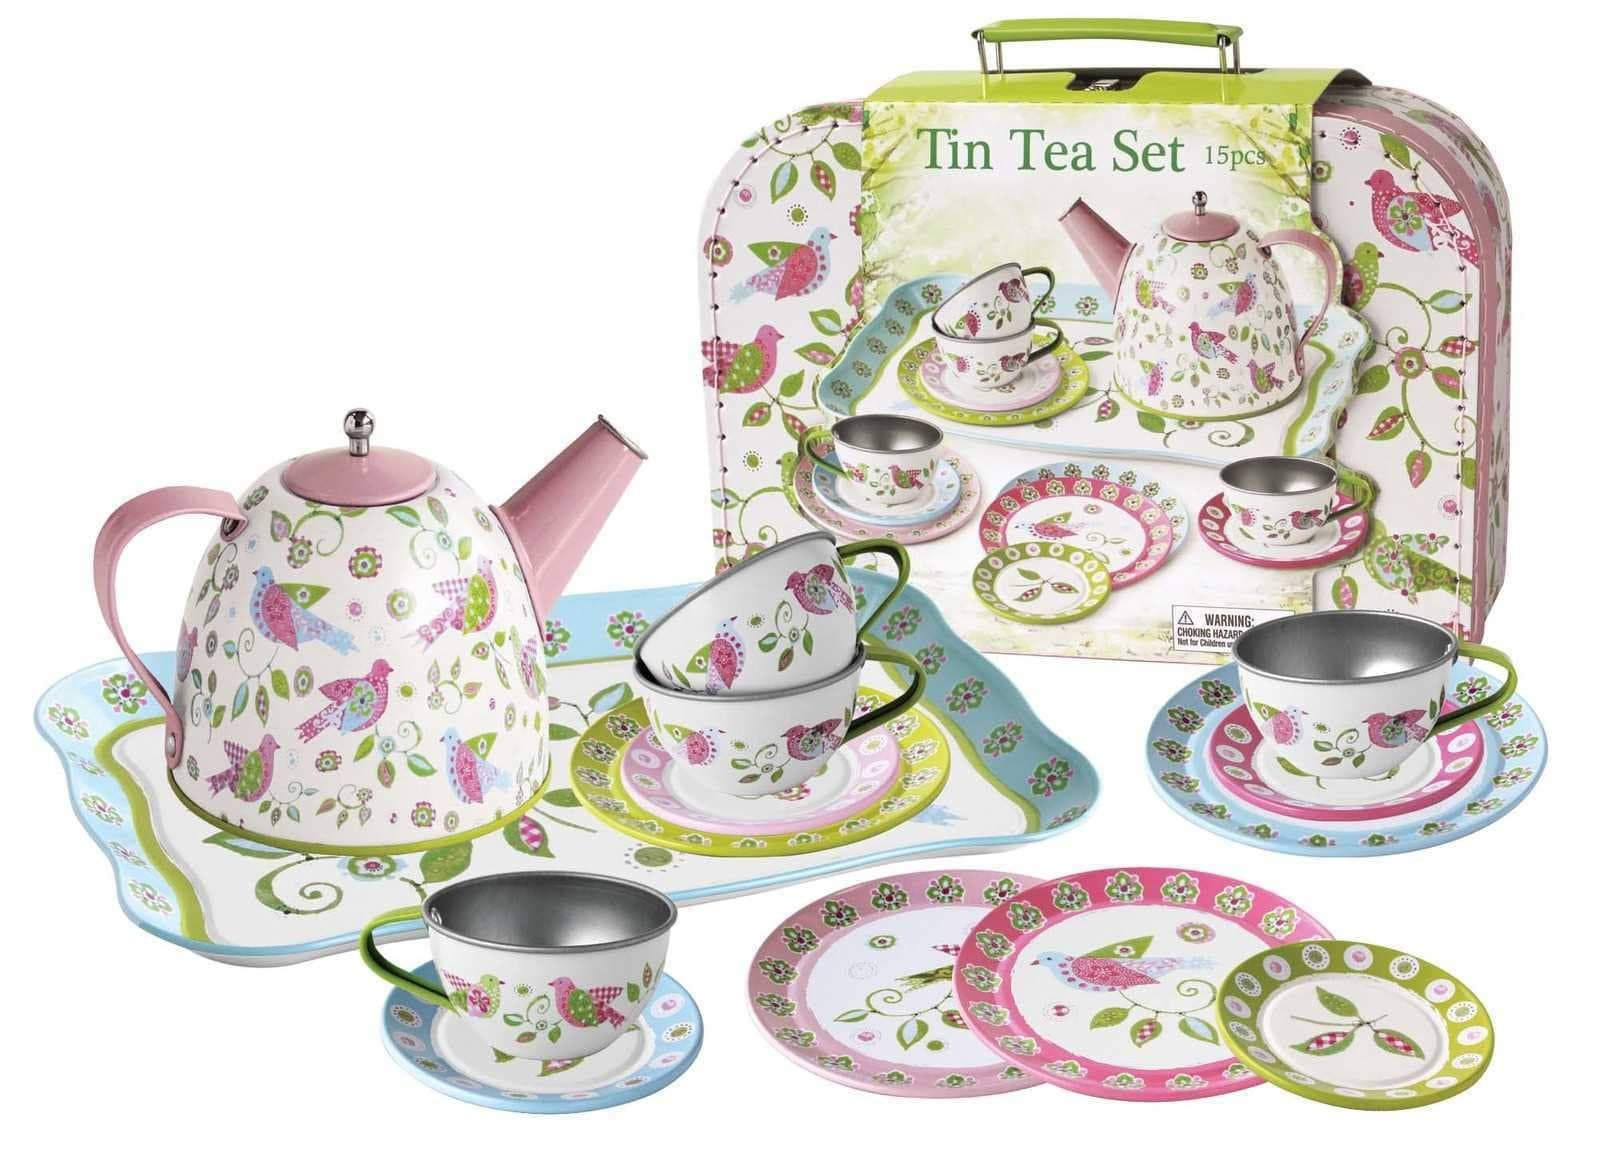 Eleganter Bird Tin Tea Set In Suitcase